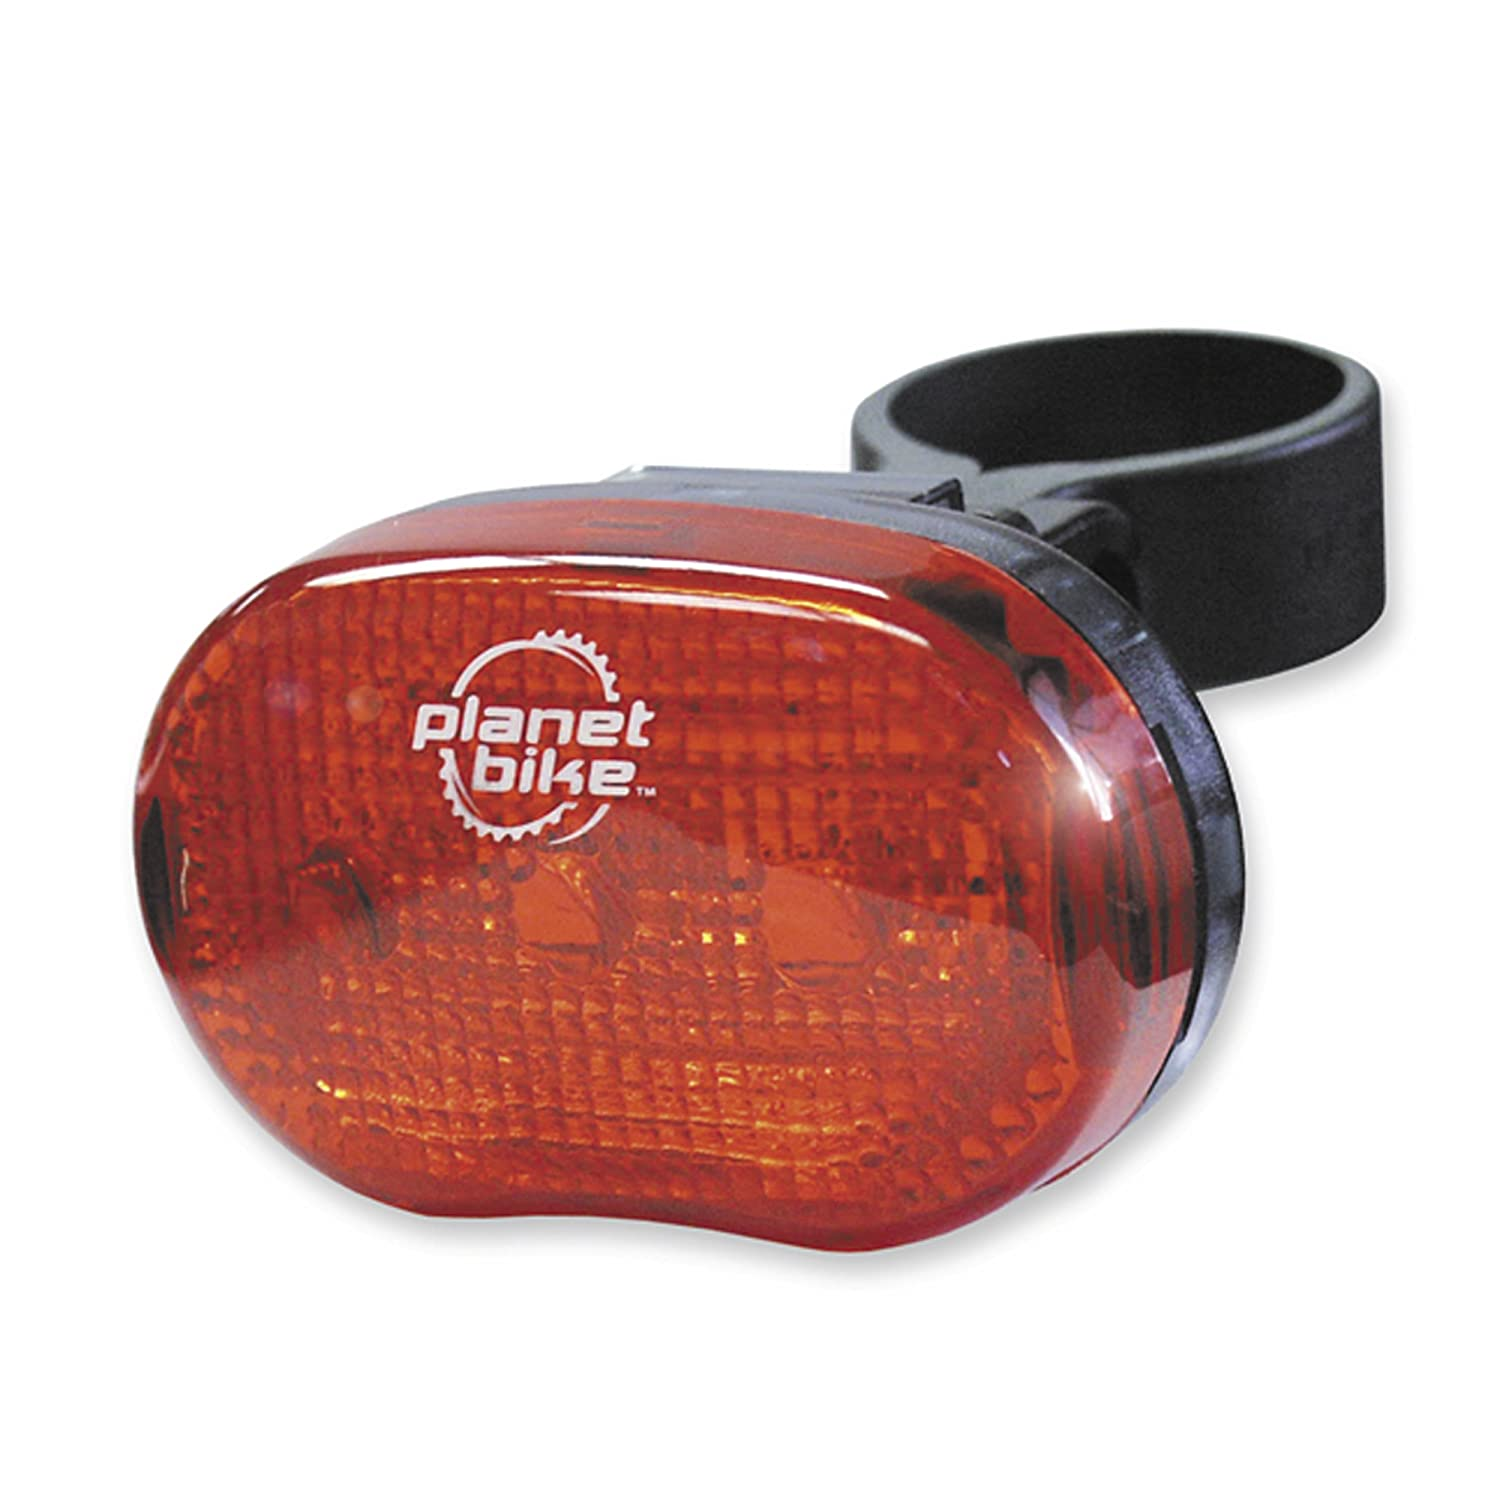 Planet Bike Blinky 3 3-Led Rear Bicycle Light